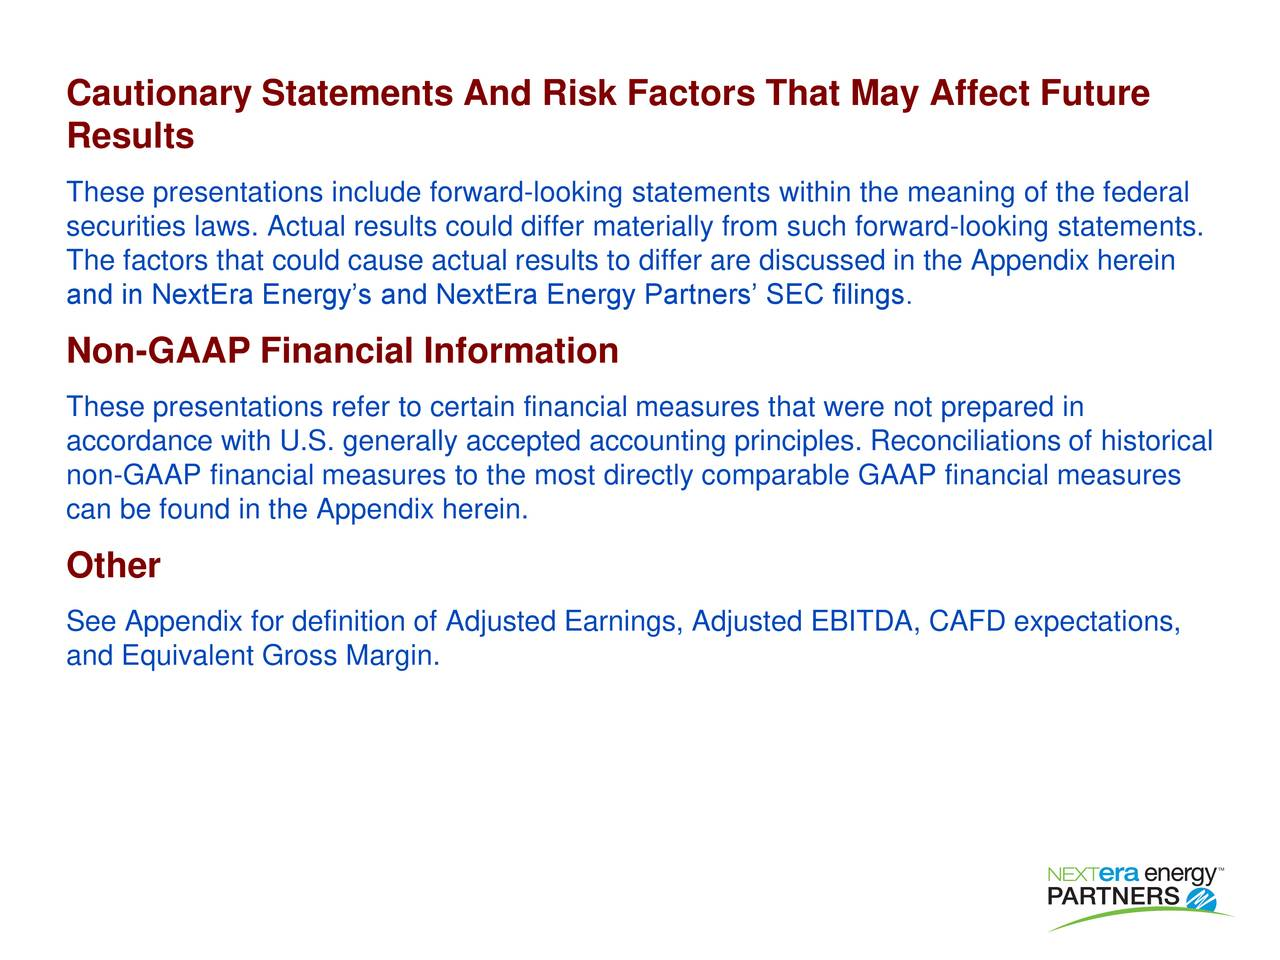 Results These presentations include forward-looking statements within the meaning of the federal securities laws. Actual results could differ materially from such forward-looking statements. The factors that could cause actual results to differ are discussed in the Appendix herein and in NextEra Energys and NextEra Energy Partners SEC filings. Non-GAAP Financial Information These presentations refer to certain financial measures that were not prepared in accordance with U.S. generally accepted accounting principles. Reconciliations of historical non-GAAP financial measures to the most directly comparable GAAP financial measures can be found in the Appendix herein. Other See Appendix for definition of Adjusted Earnings, Adjusted EBITDA, CAFD expectations, and Equivalent Gross Margin.